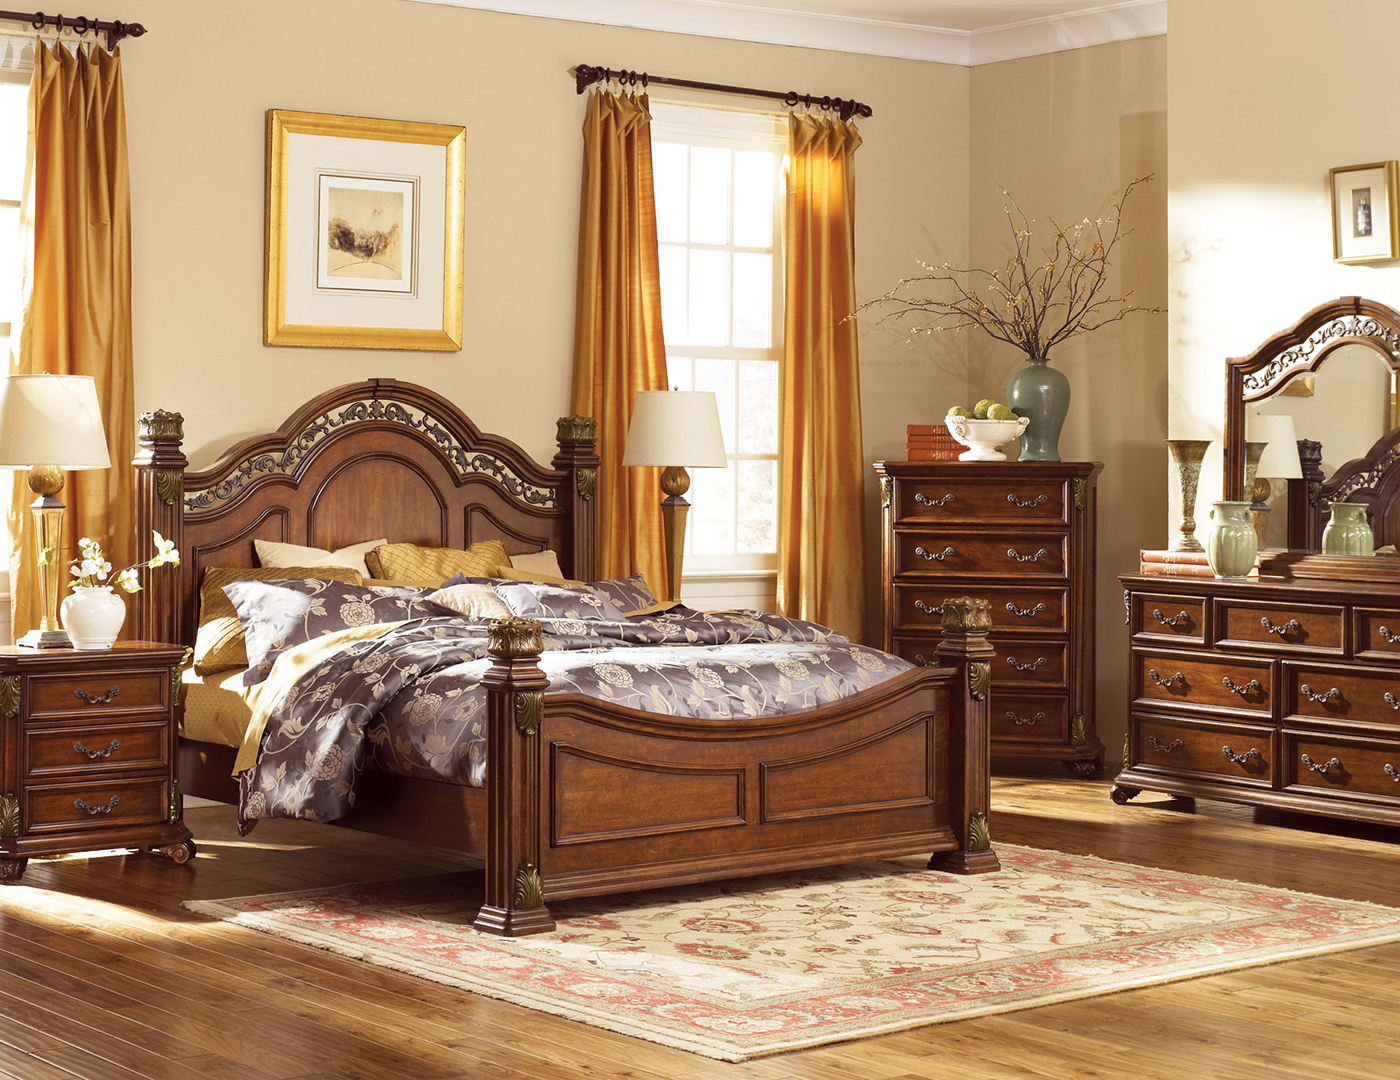 Messina King Poster Bed